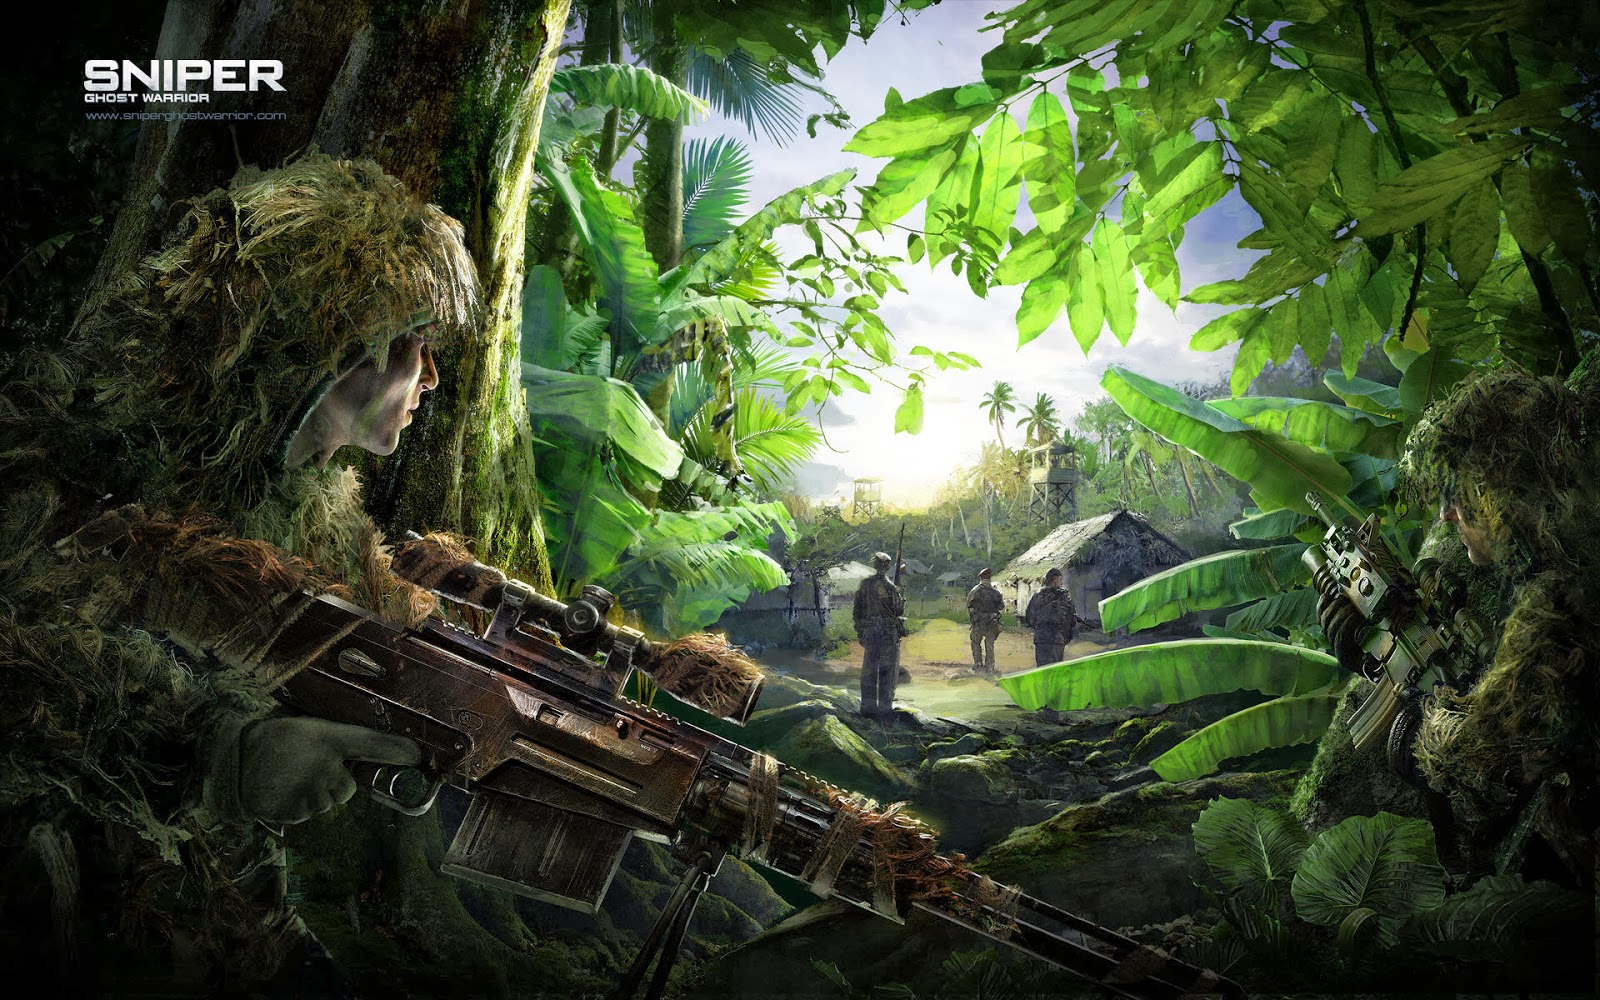 You Can Download This Sniper Ghost Warrior Wallpaper Just Left Click From Your Mouse And Set The On Desktop OS Or Do